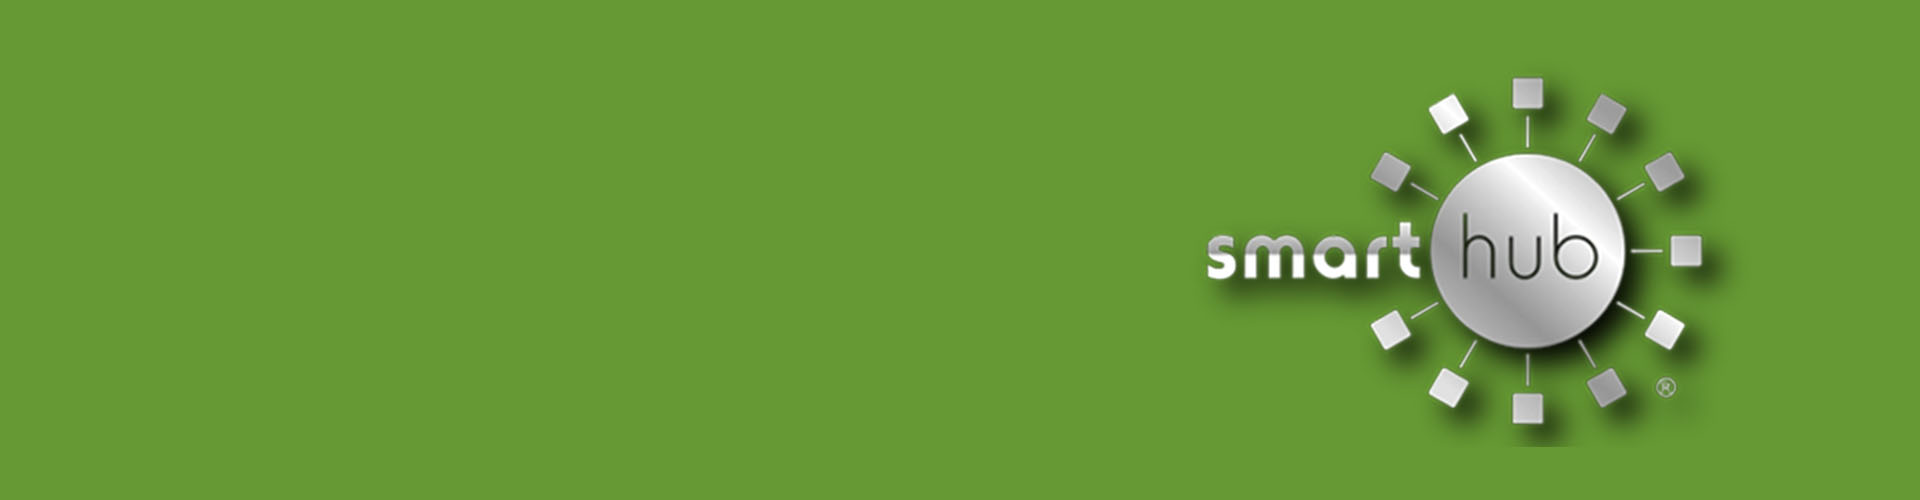 SmartHub logo on green background